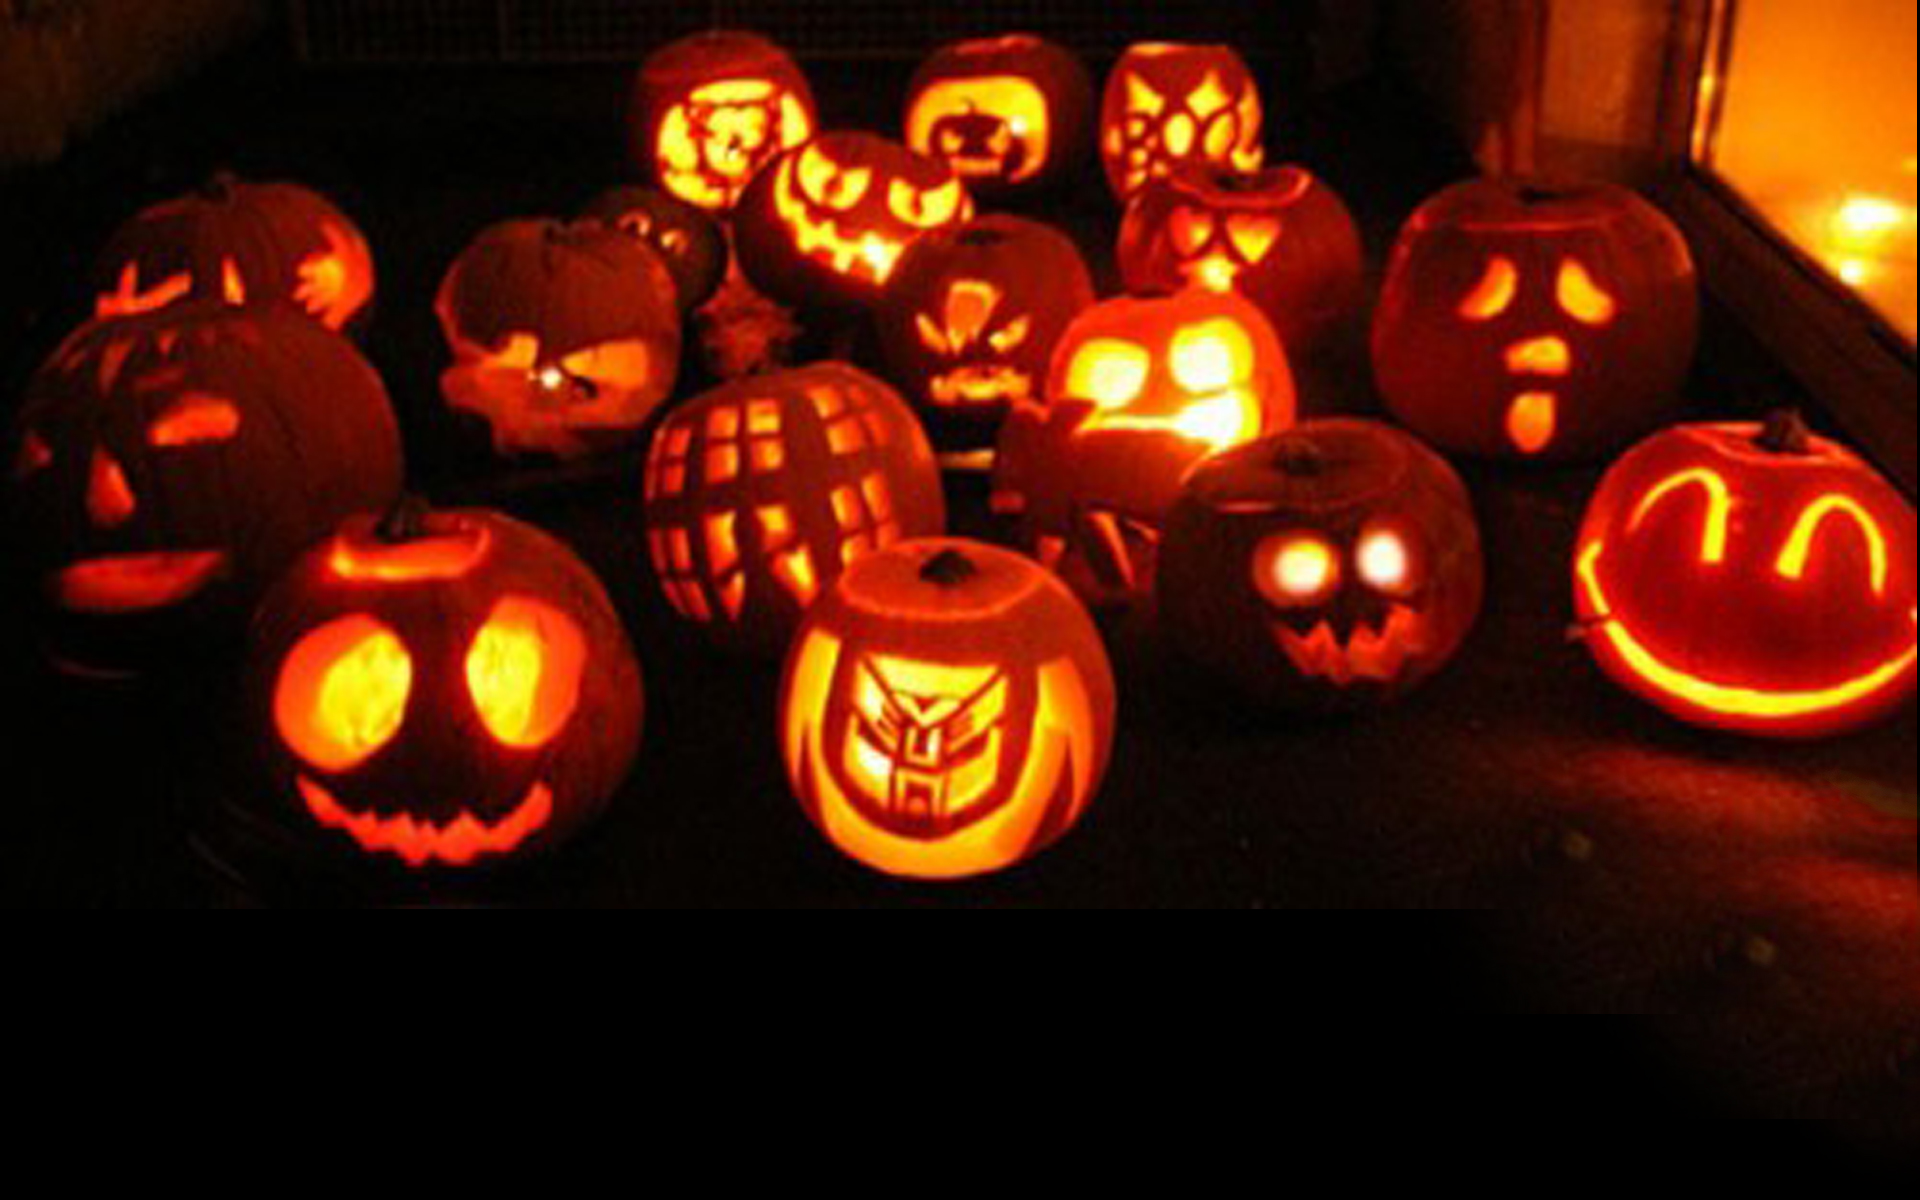 Decoration ideas wonderful halloween pumpkin carving colections for